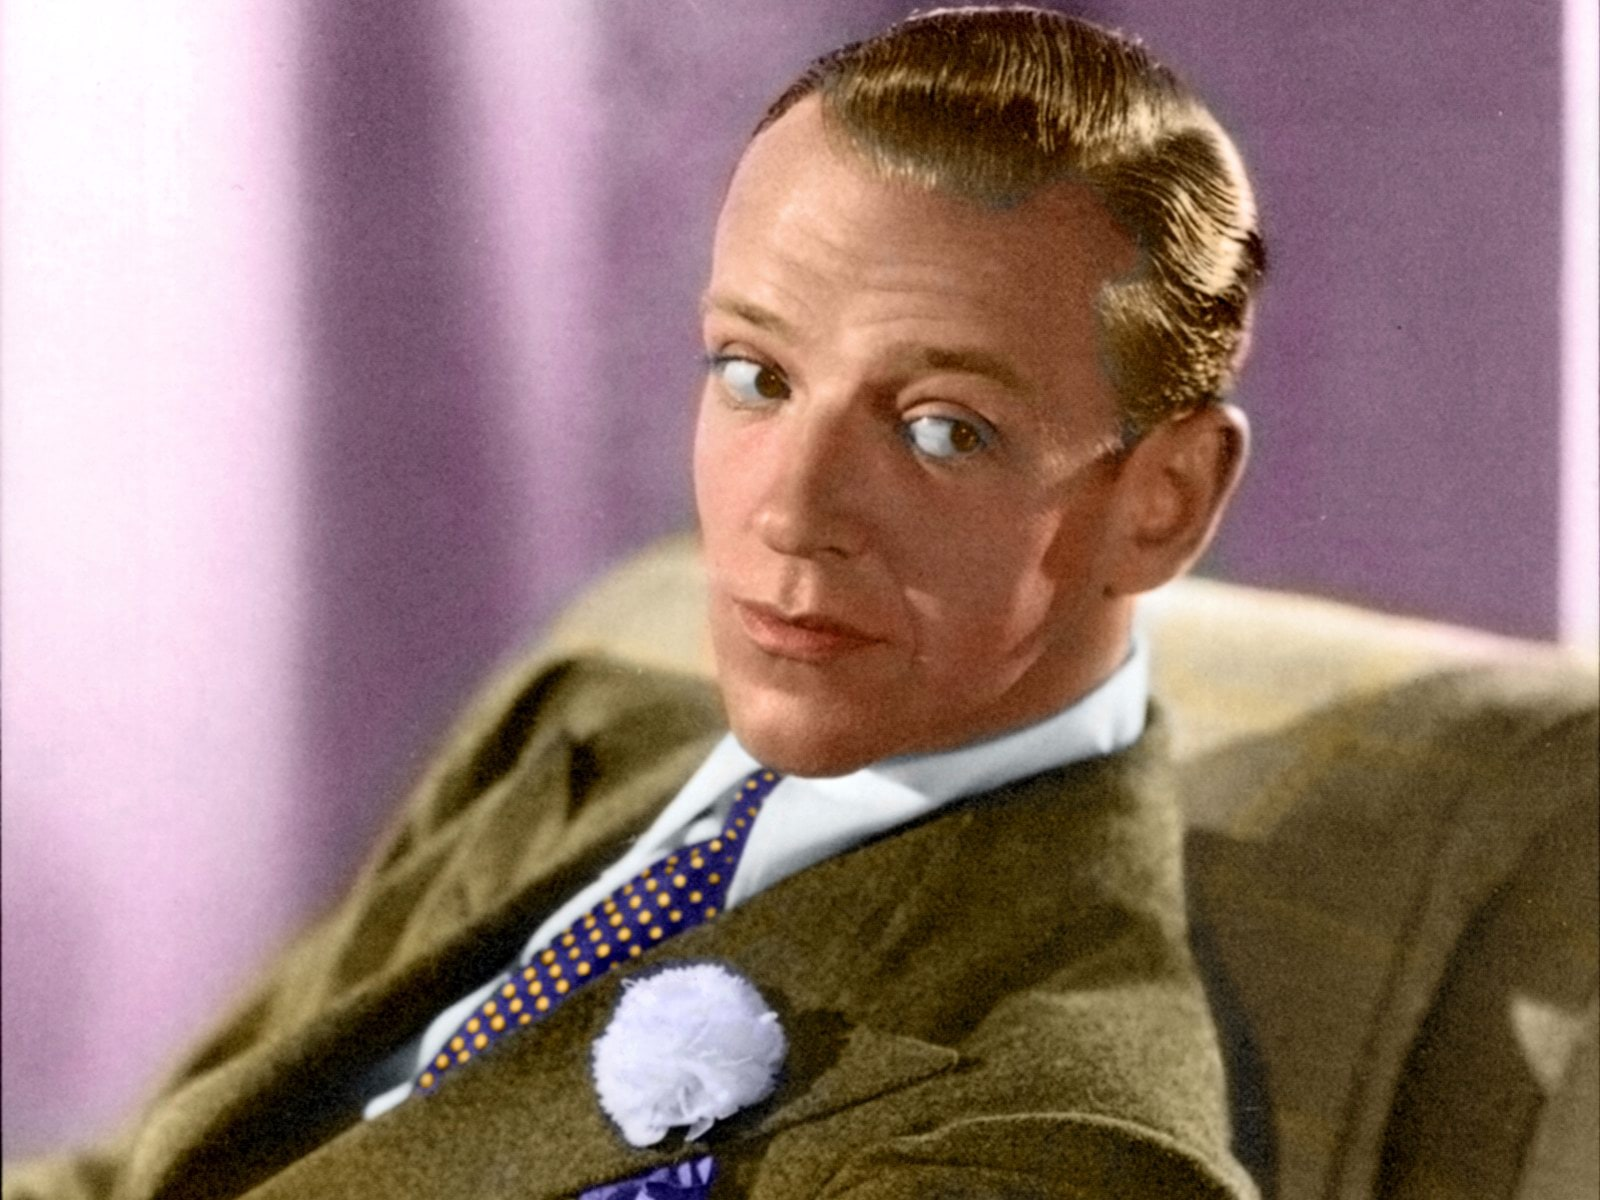 Fred Astaire Background